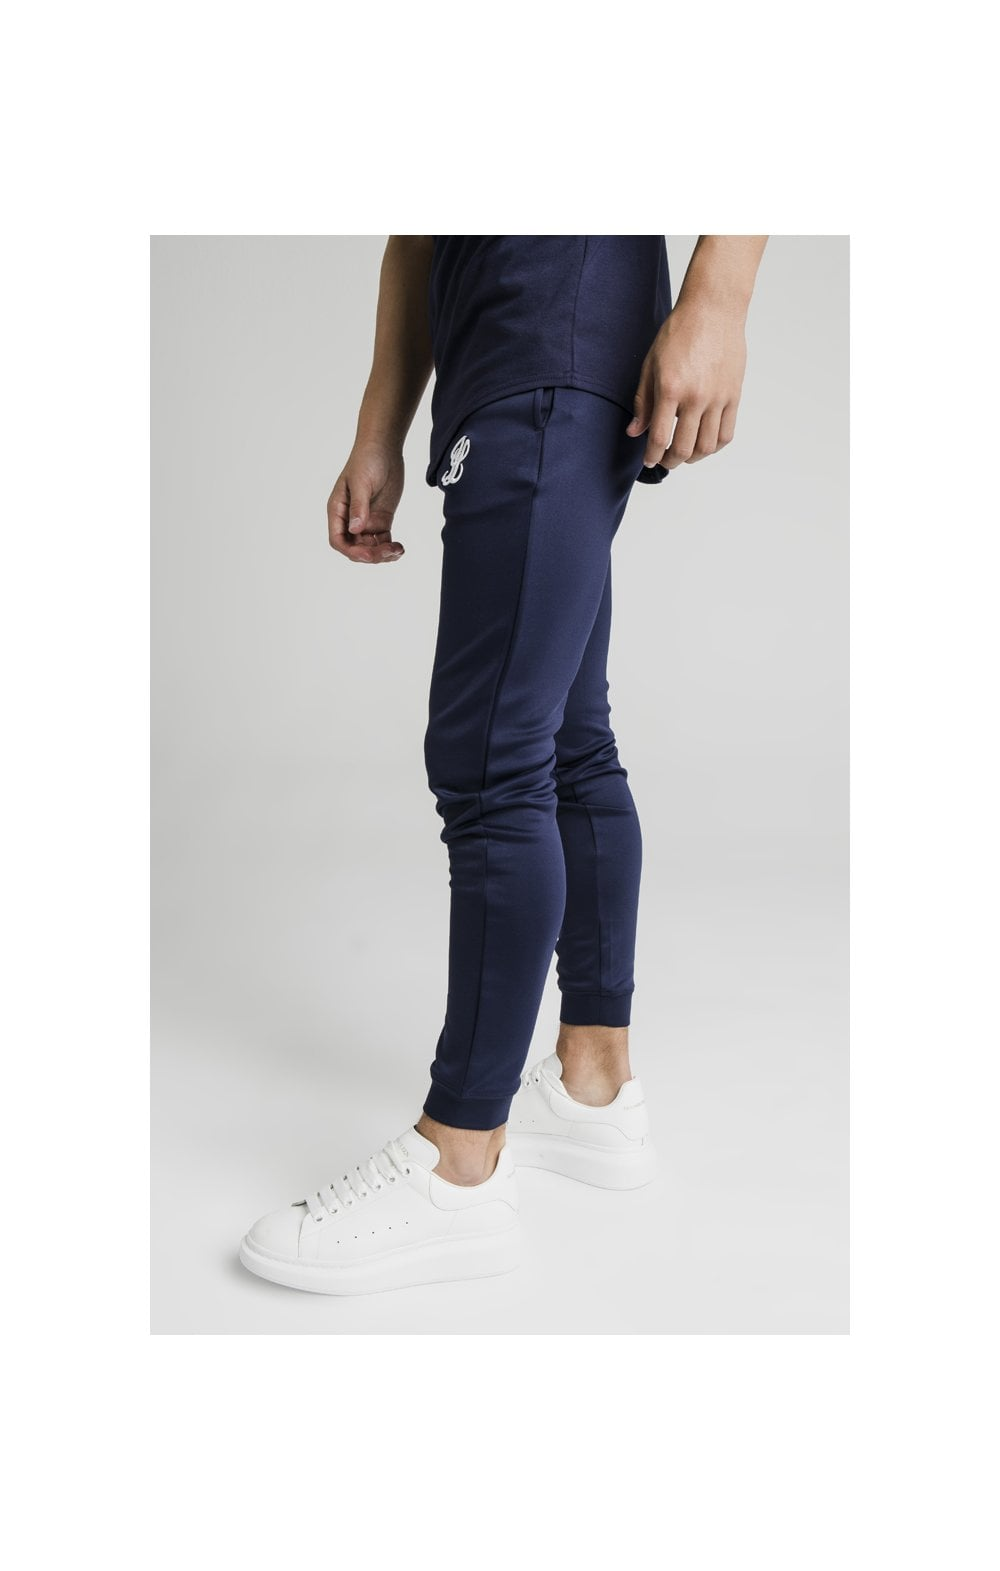 Illusive London Side Tape Joggers - Navy (1)